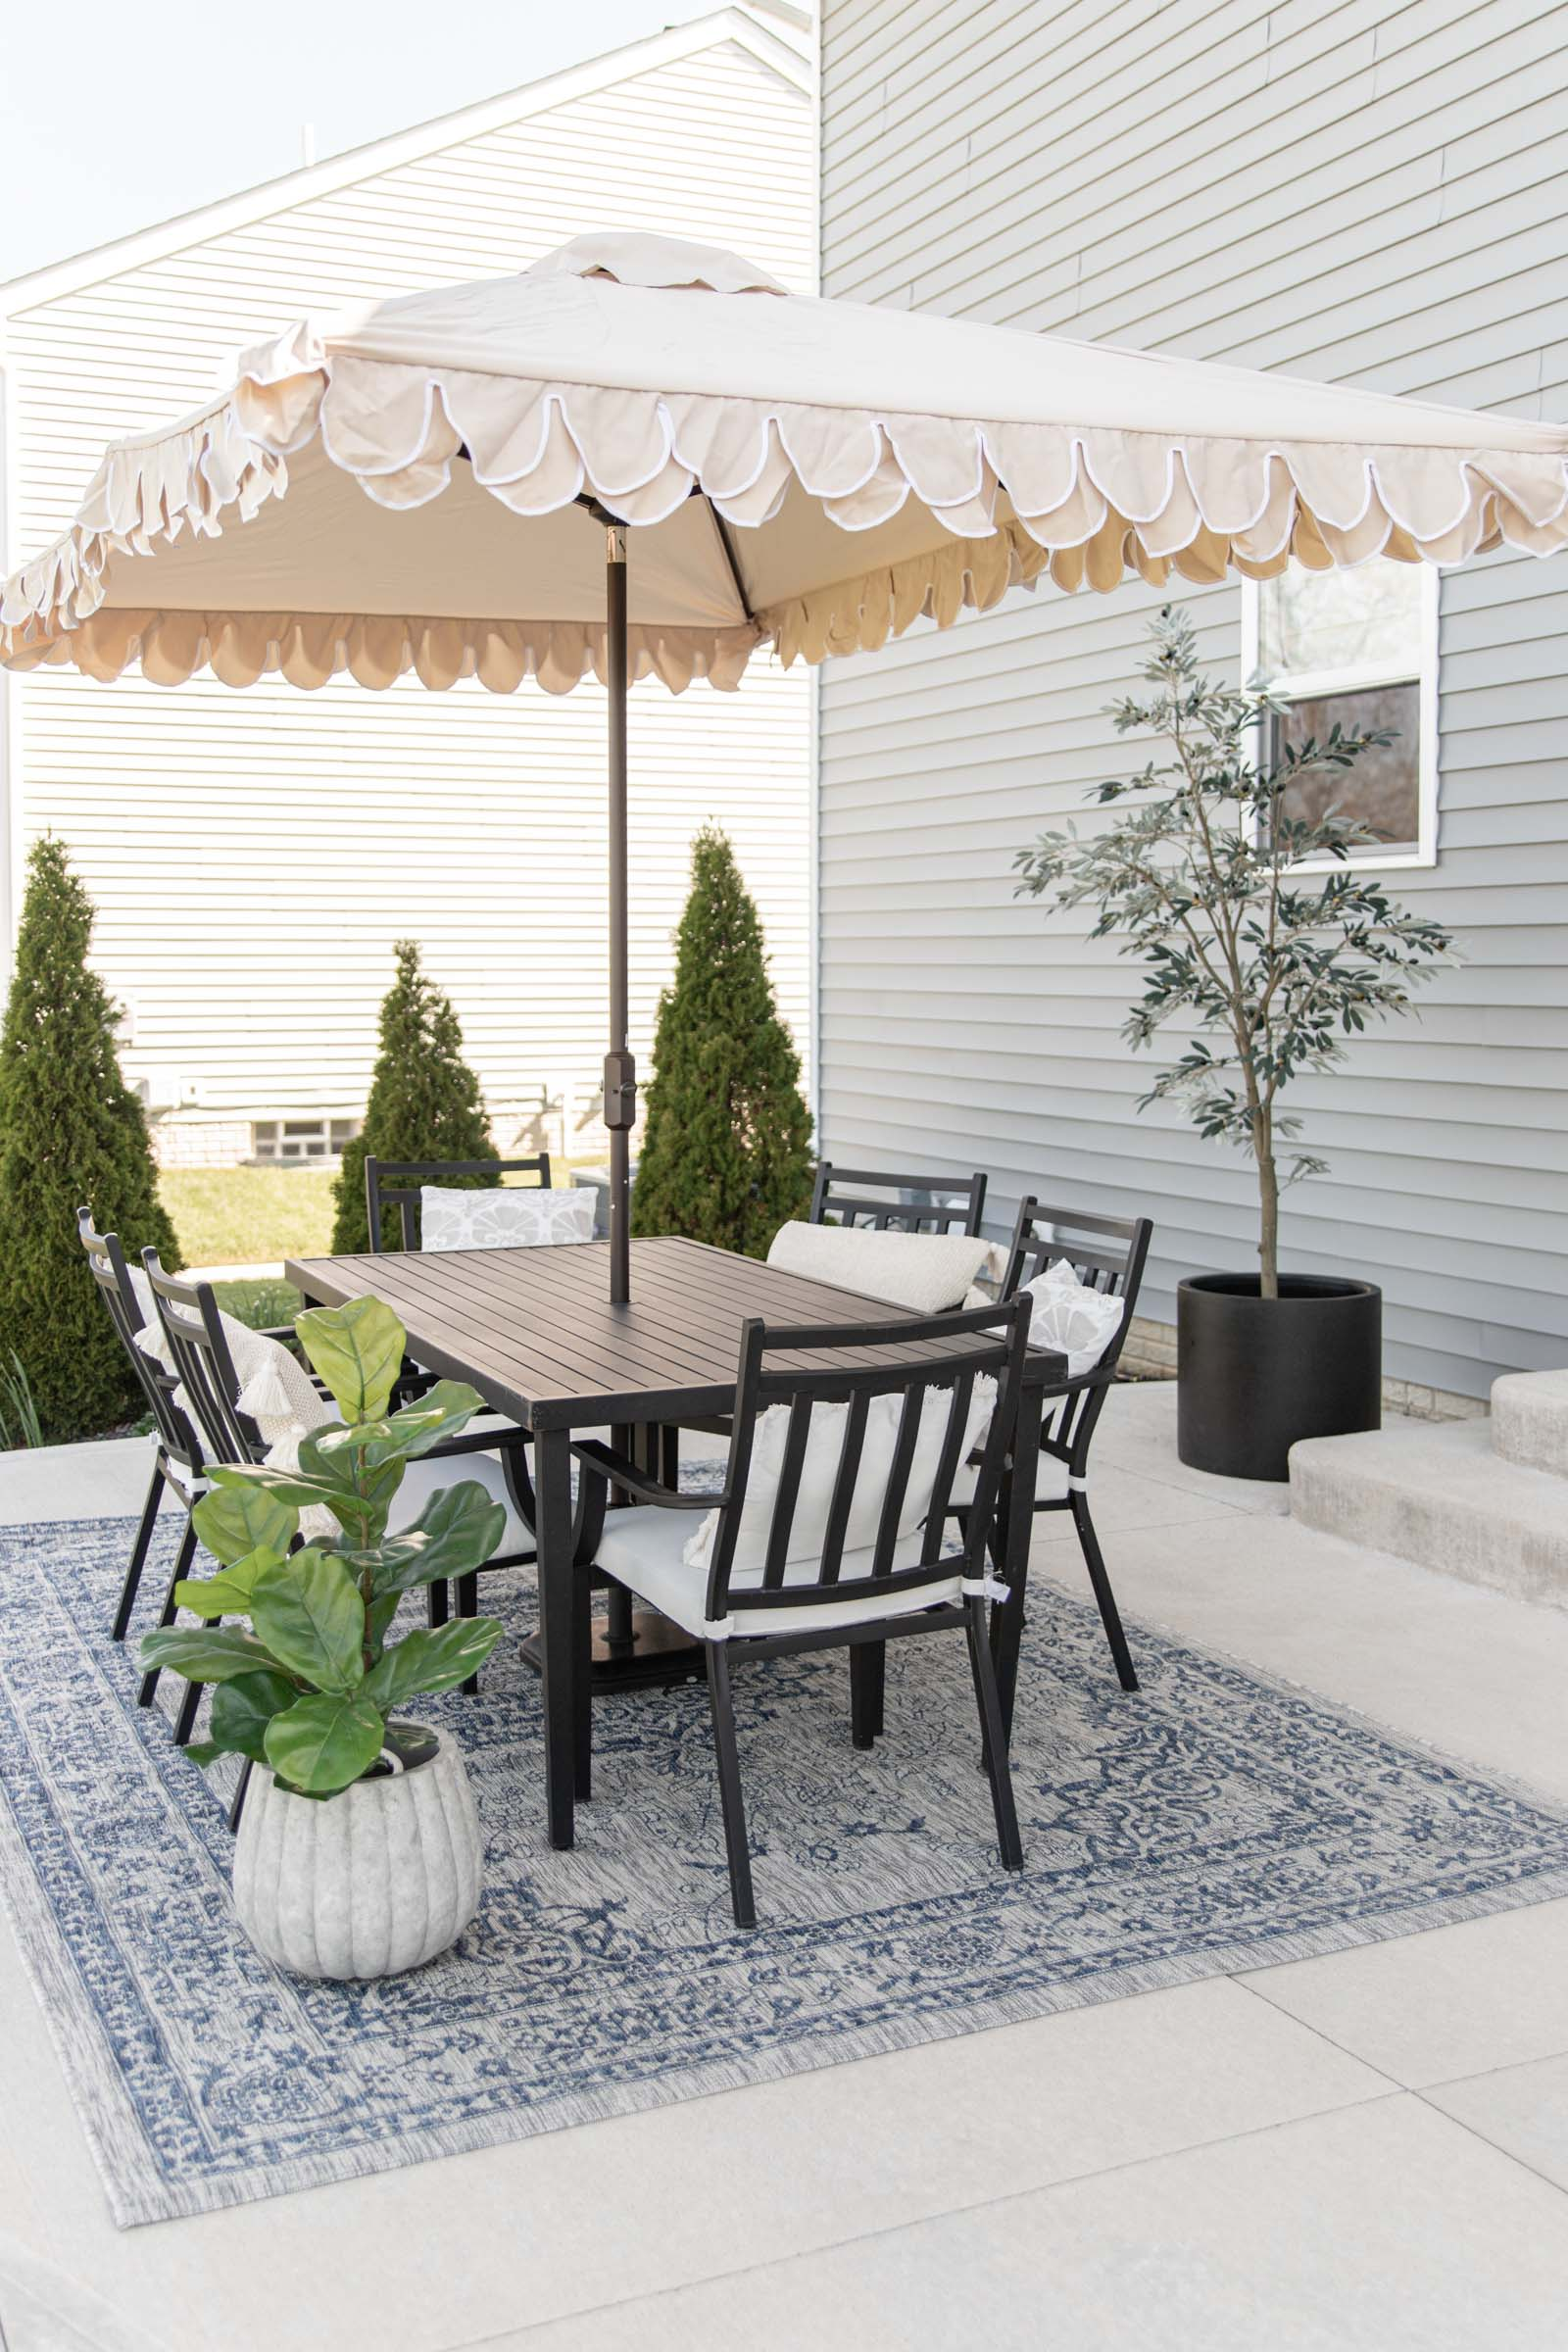 Simple Patio Decorating Ideas | beige umbrella with scalloped edge, blue outdoor rug, pillows